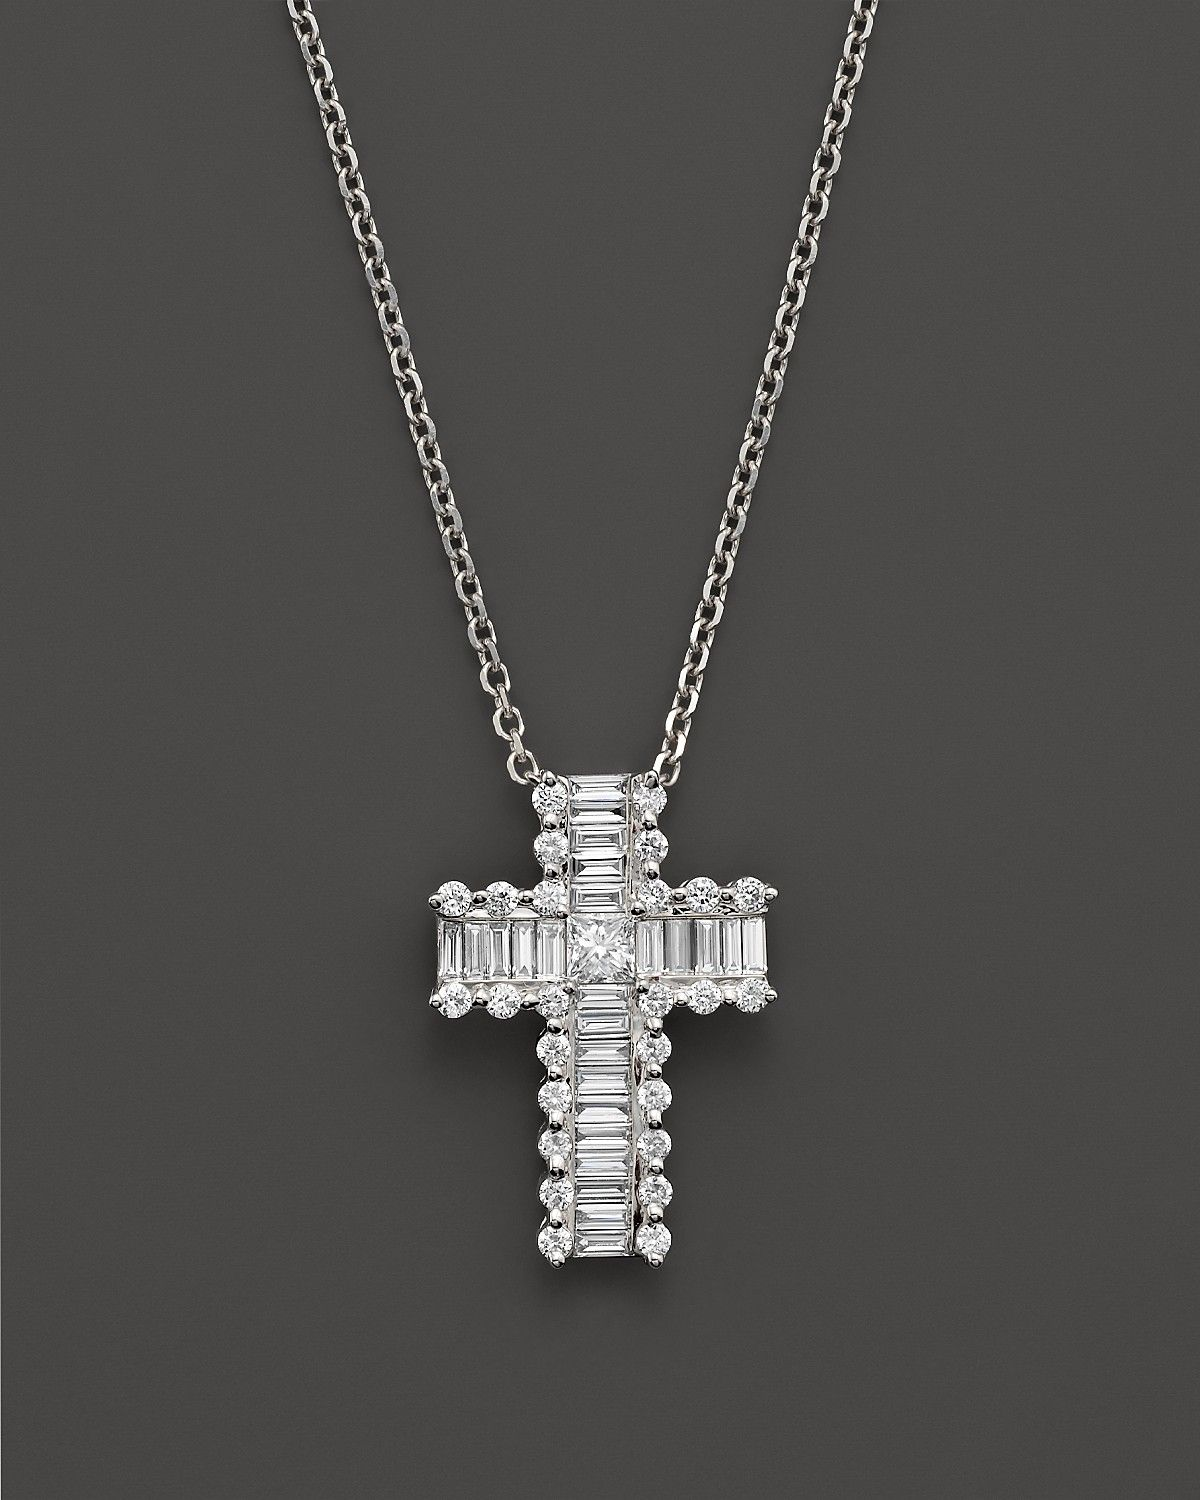 Round and baguette diamond cross pendant necklace in 14k white gold round and baguette diamond cross pendant necklace in 14k white gold 55 ct tw 100 exclusive bloomingdales aloadofball Image collections